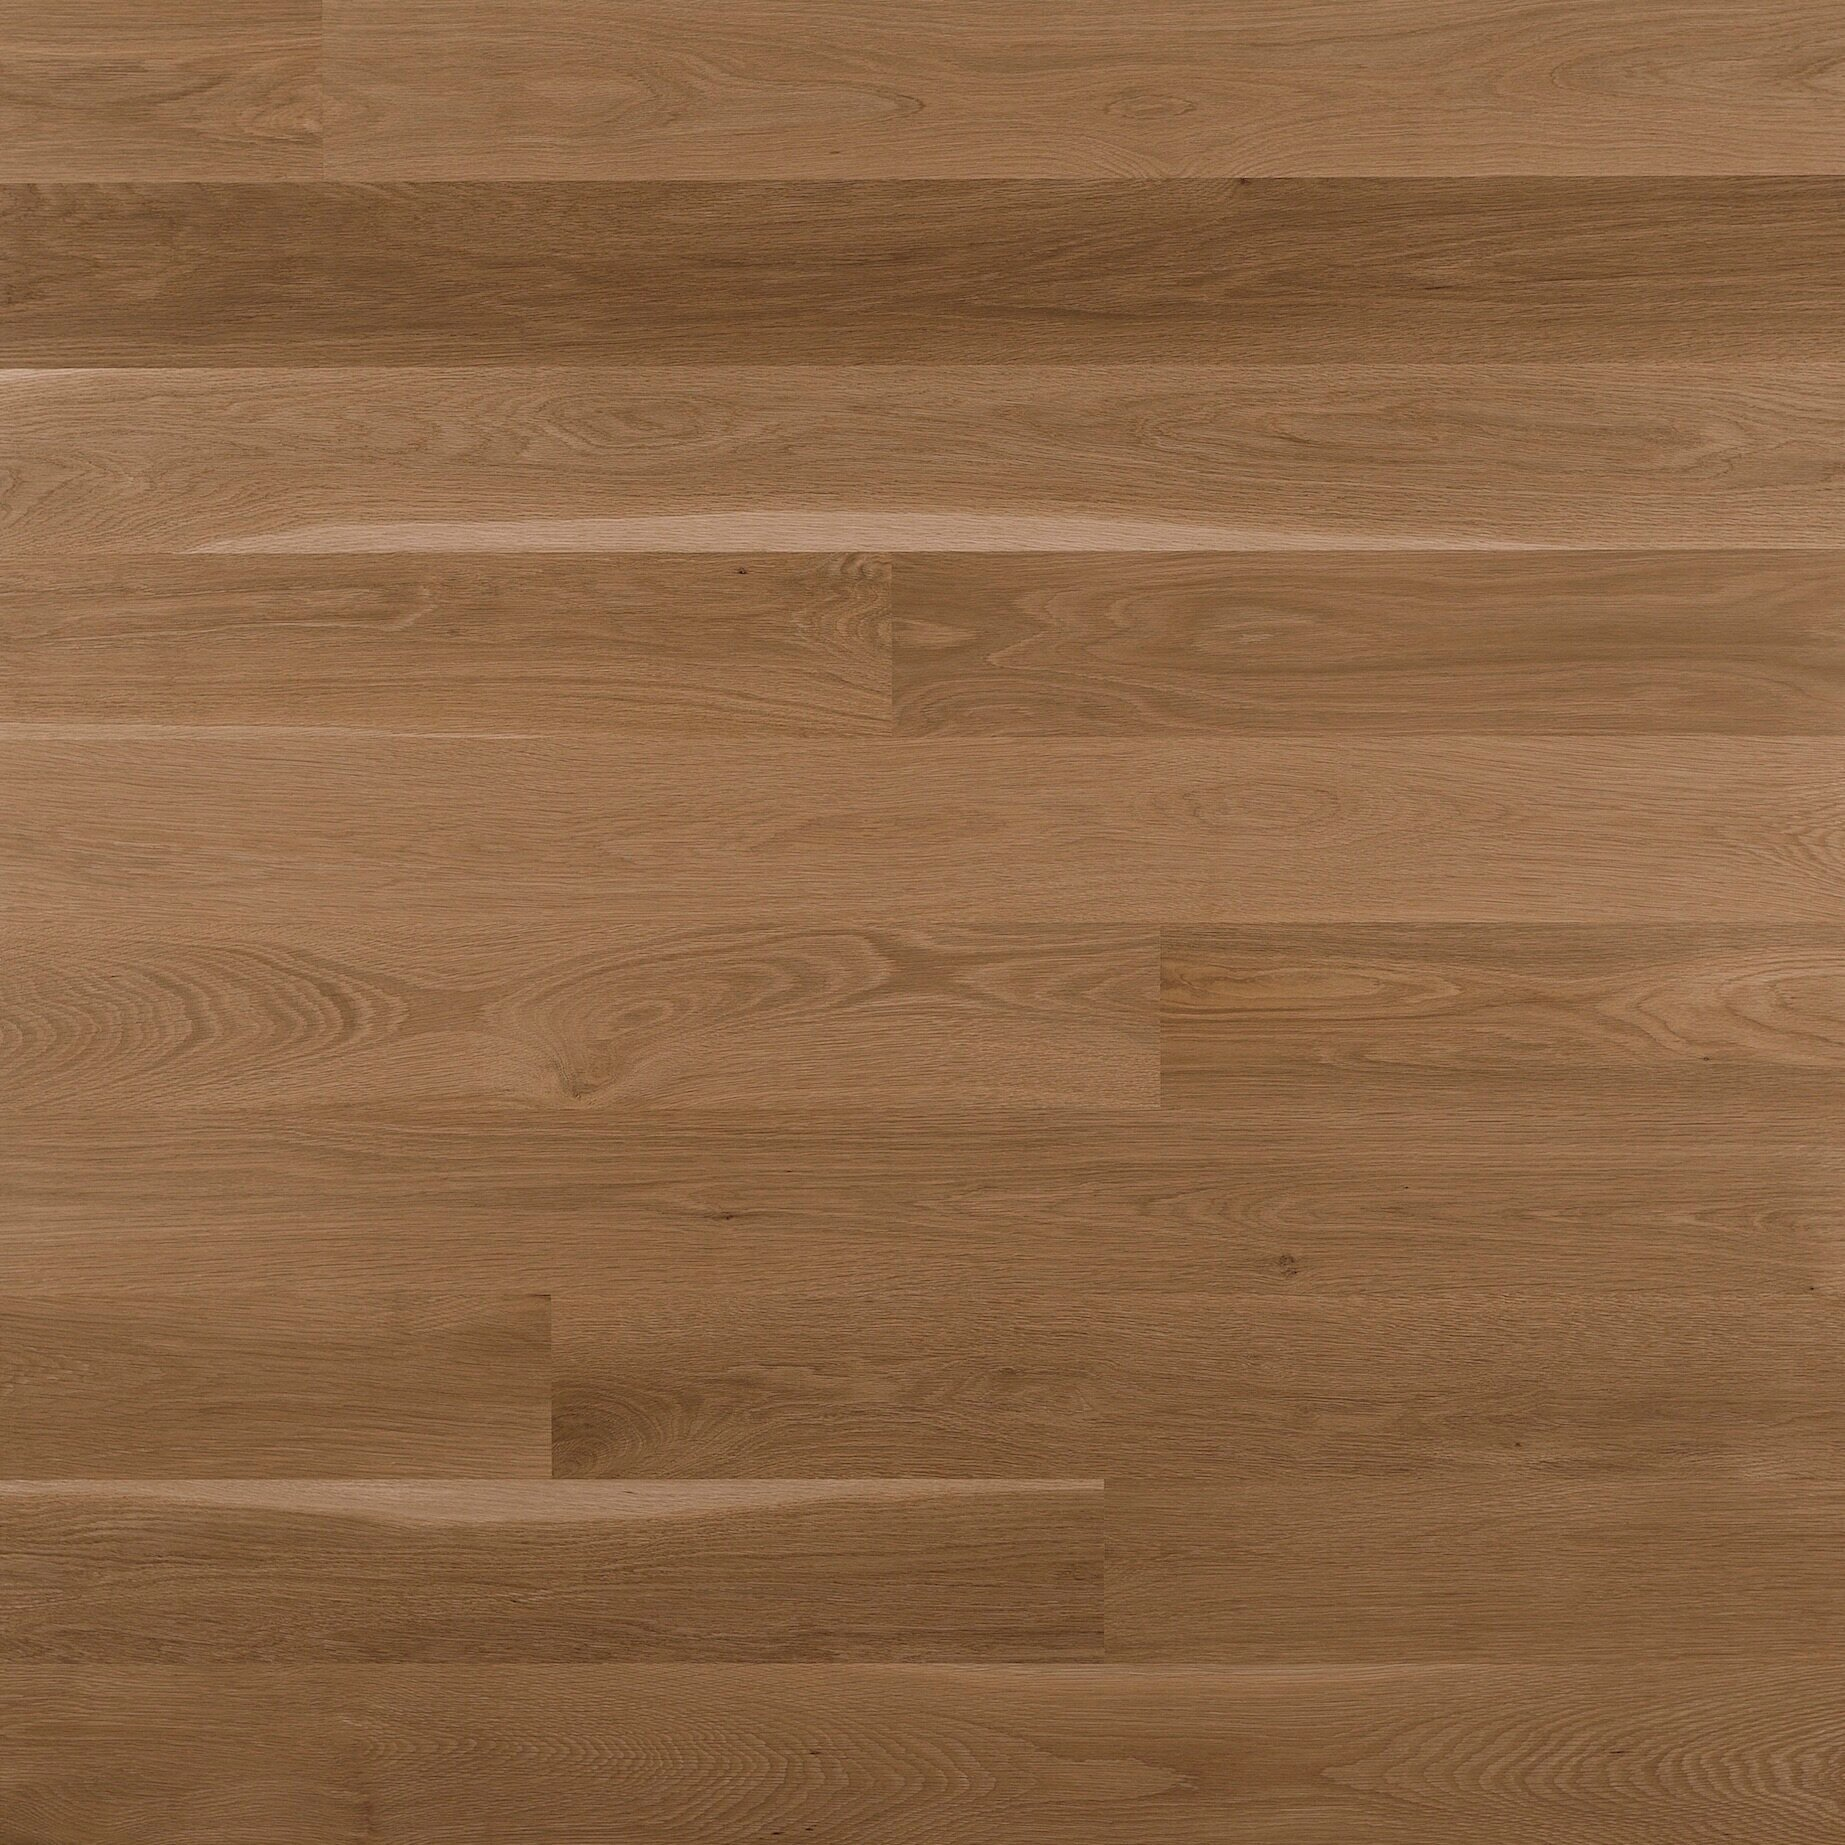 WHITE OAK, FLAT SAWN, SELECT GRADE